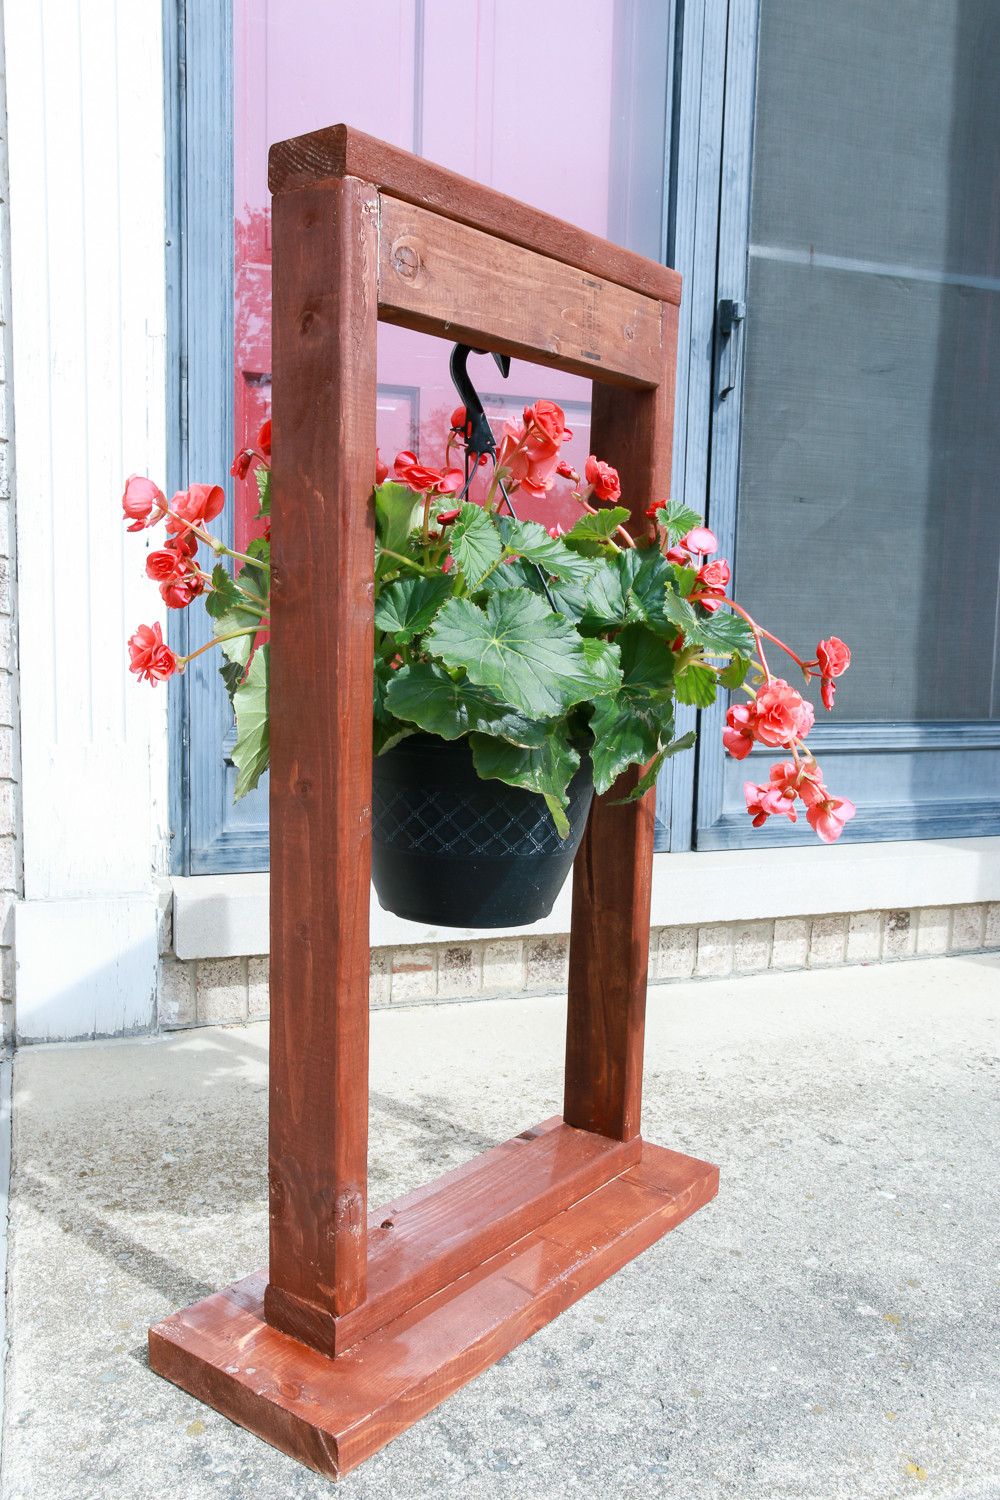 Best ideas about DIY Outdoor Plant Stand . Save or Pin DIY Hanging Plant Stand The Weathered Fox Now.